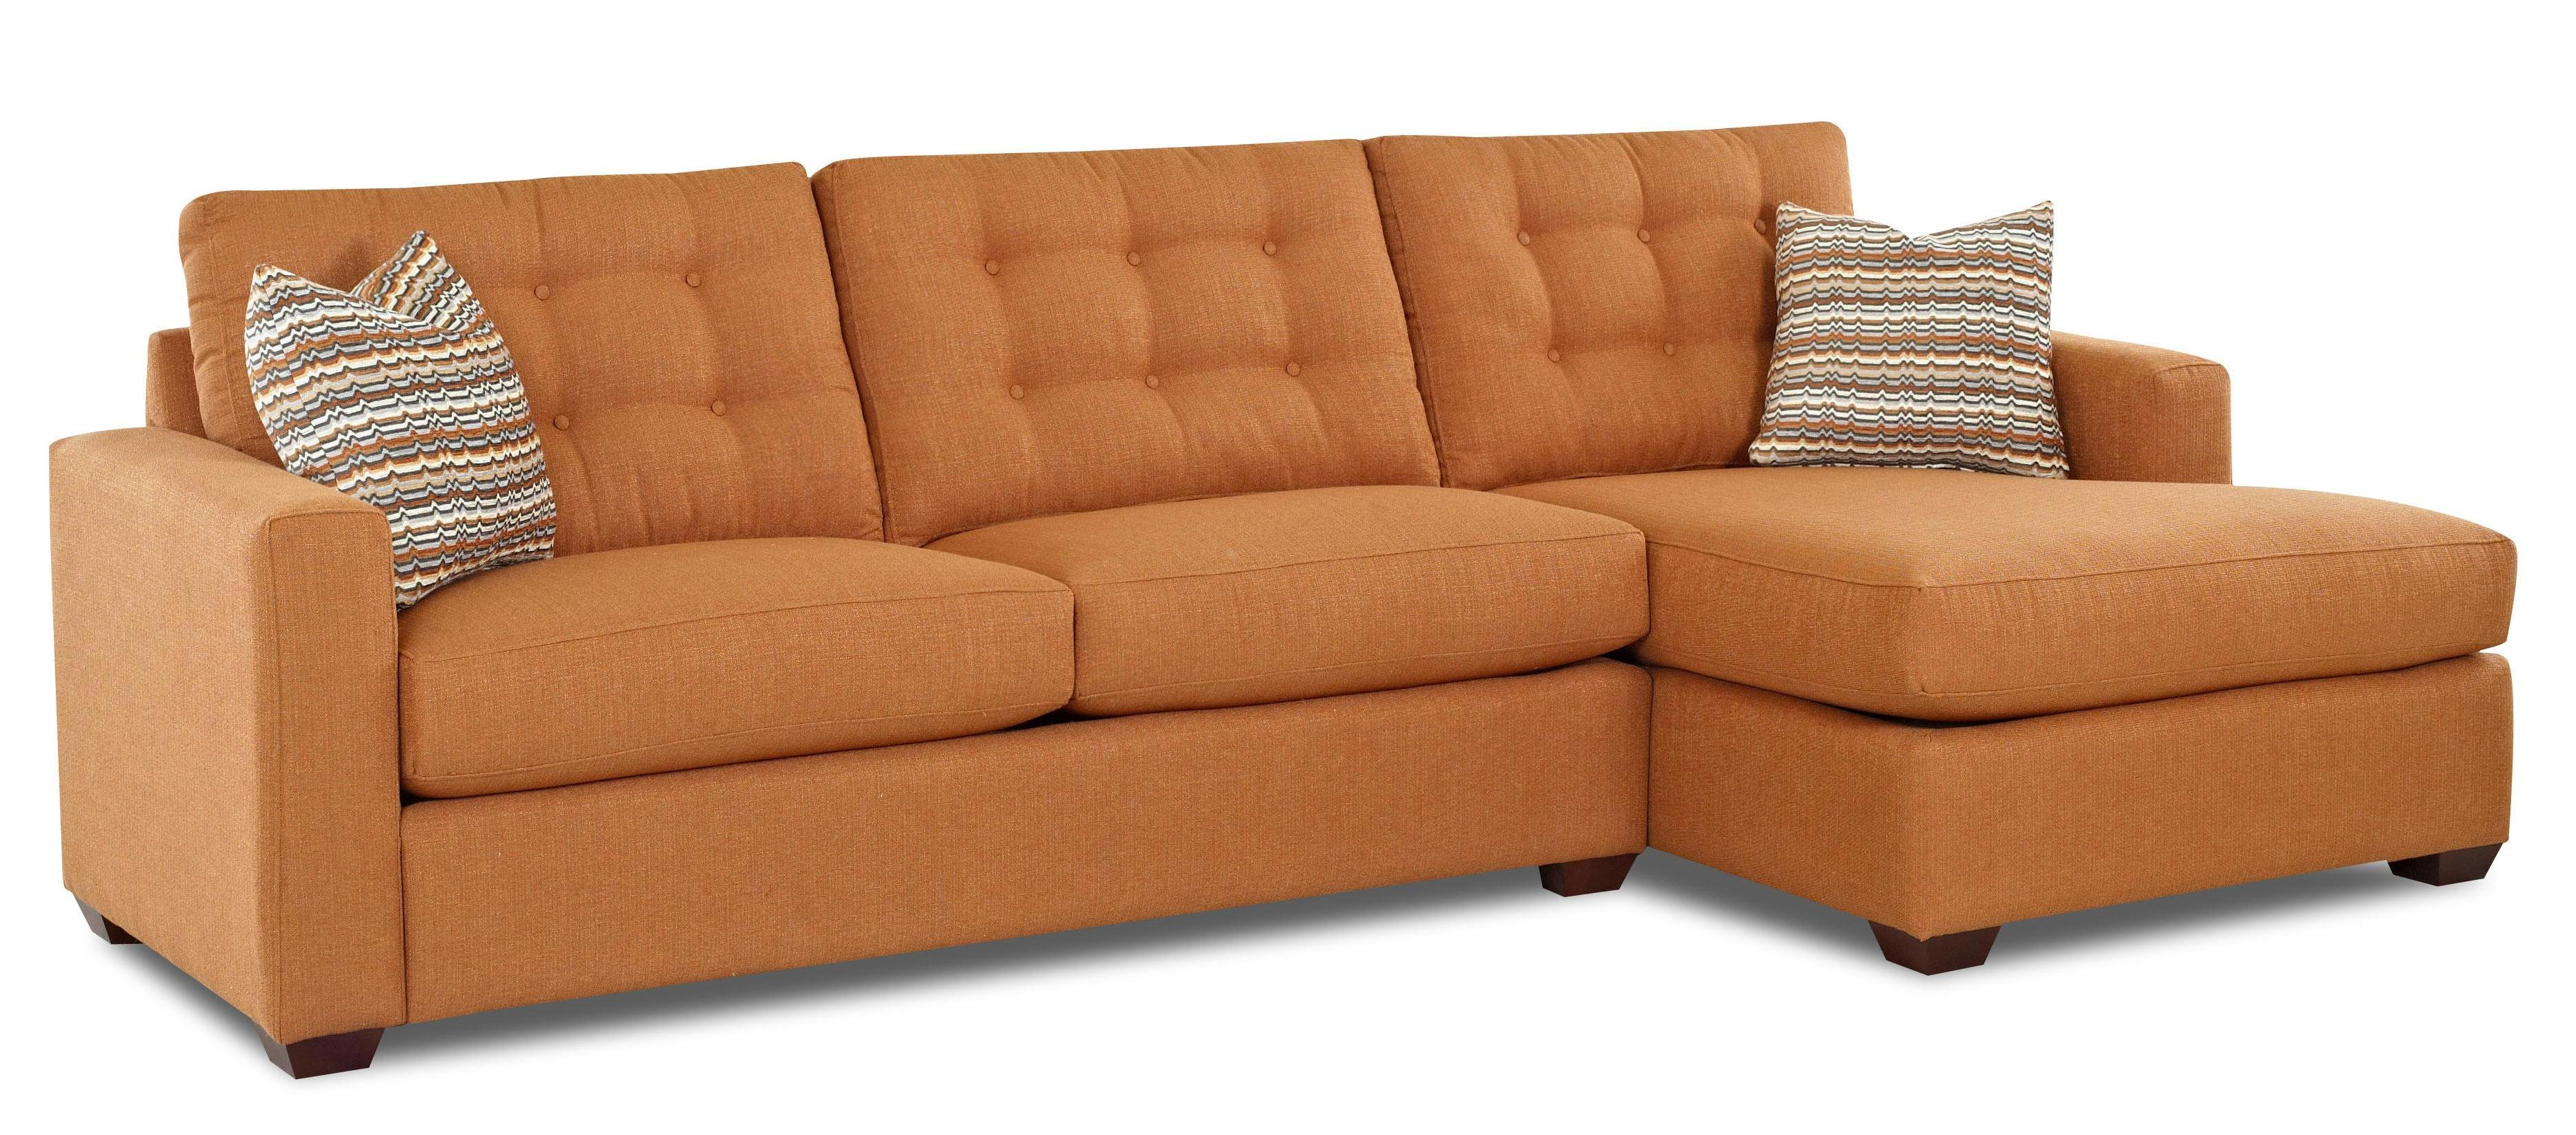 newton rolled arm sofa chaise convertible bed reviews sectional sofas mid century modern right ing guide wayfair